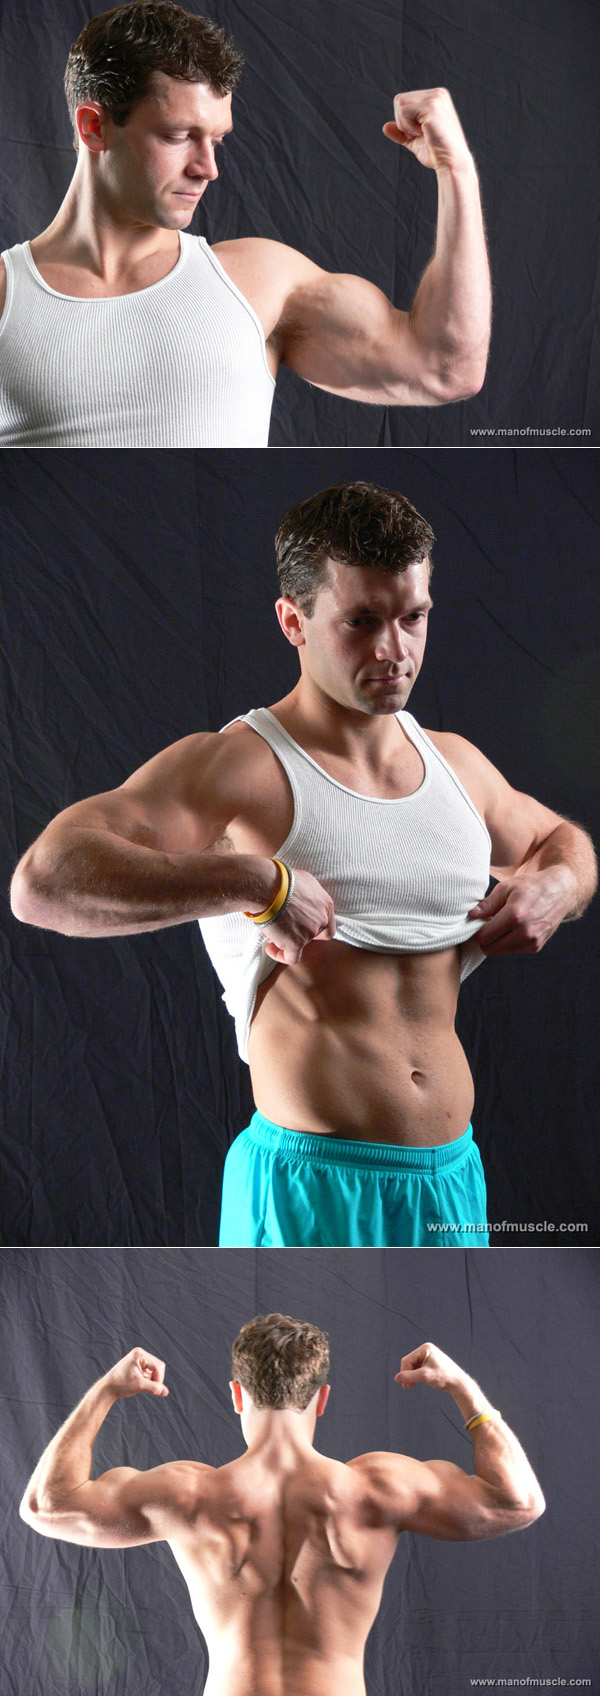 Hot Pictures From Wrestles Bodybuilder Man Woman Free Pics And Videos